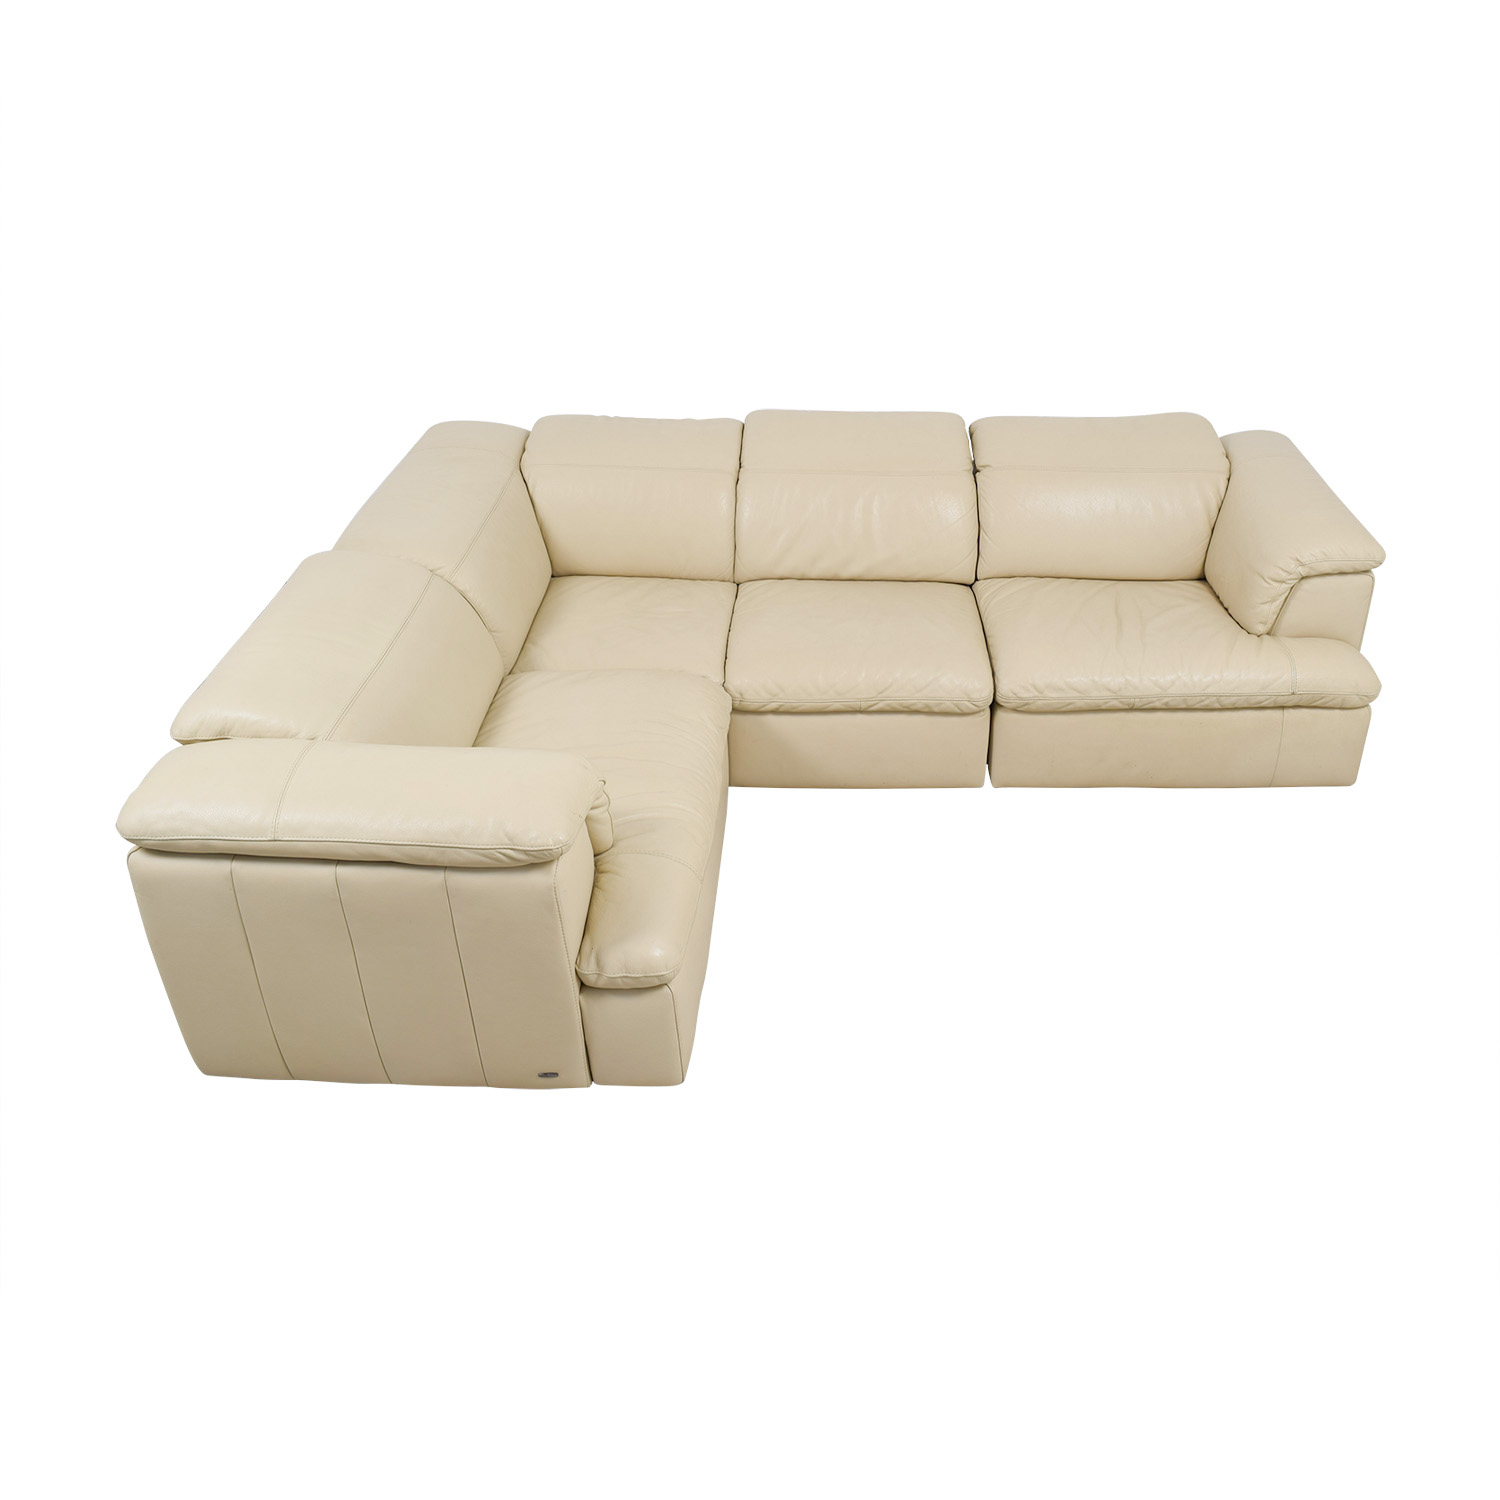 Sofa L Shape Dimensions 79 Off Natuzzi Natuzzi Vanilla Italian Leather L Shaped Sectional Sofas